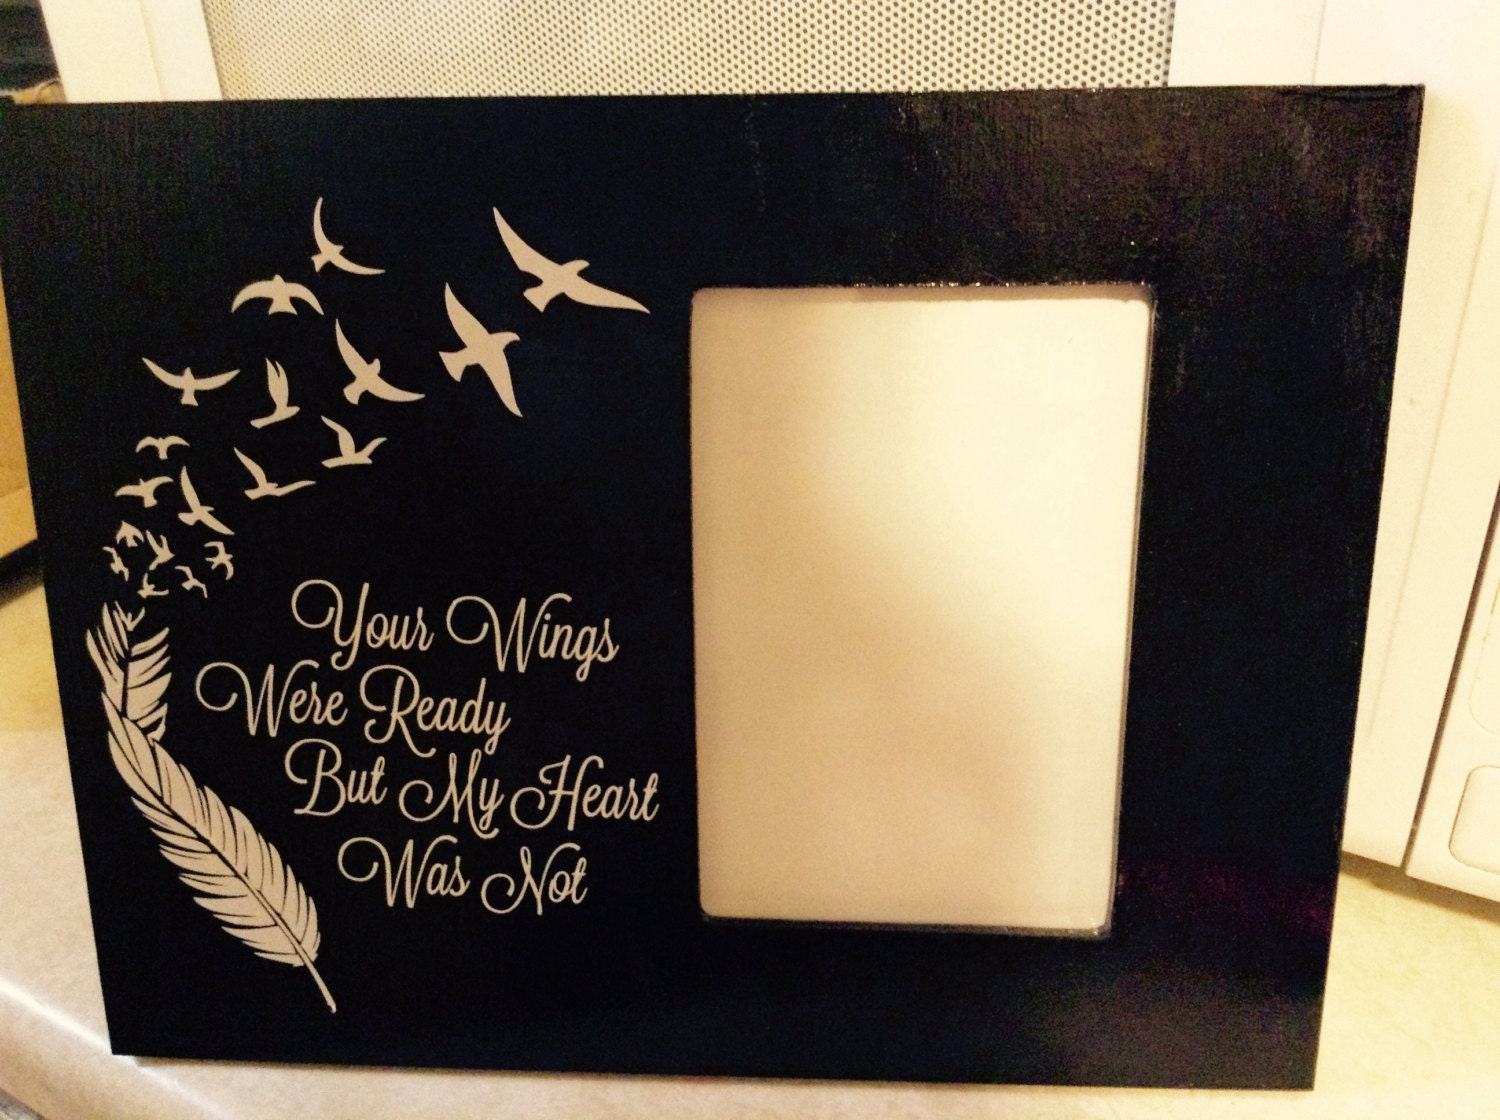 Your wings were ready but my heart was not..Photo frame for passed loved  one.Q